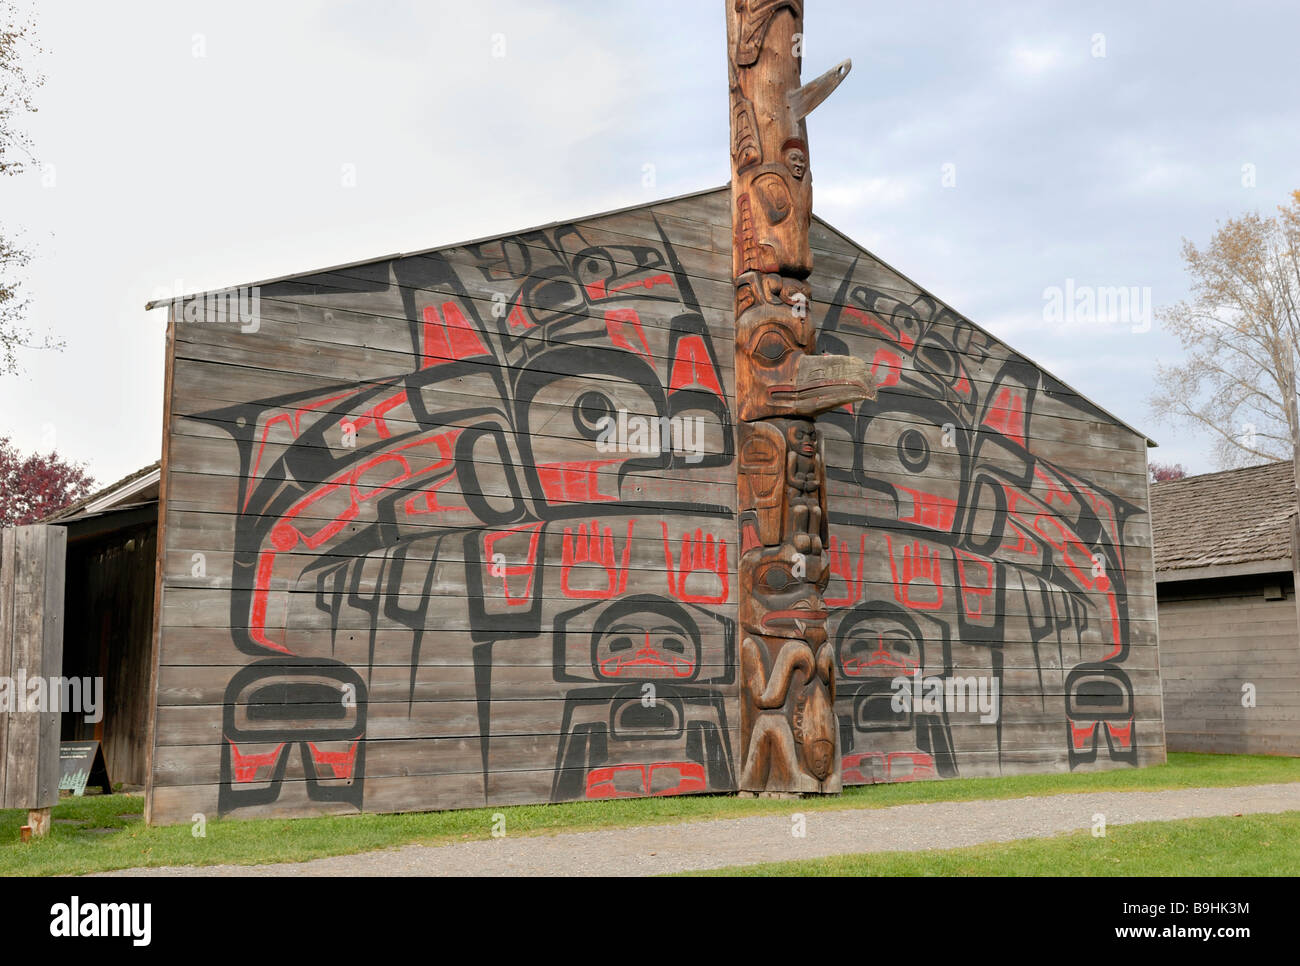 Gable facade of an Indian longhouse, K'san museum village, Hazelton, British Columbia, Canada, North America - Stock Image